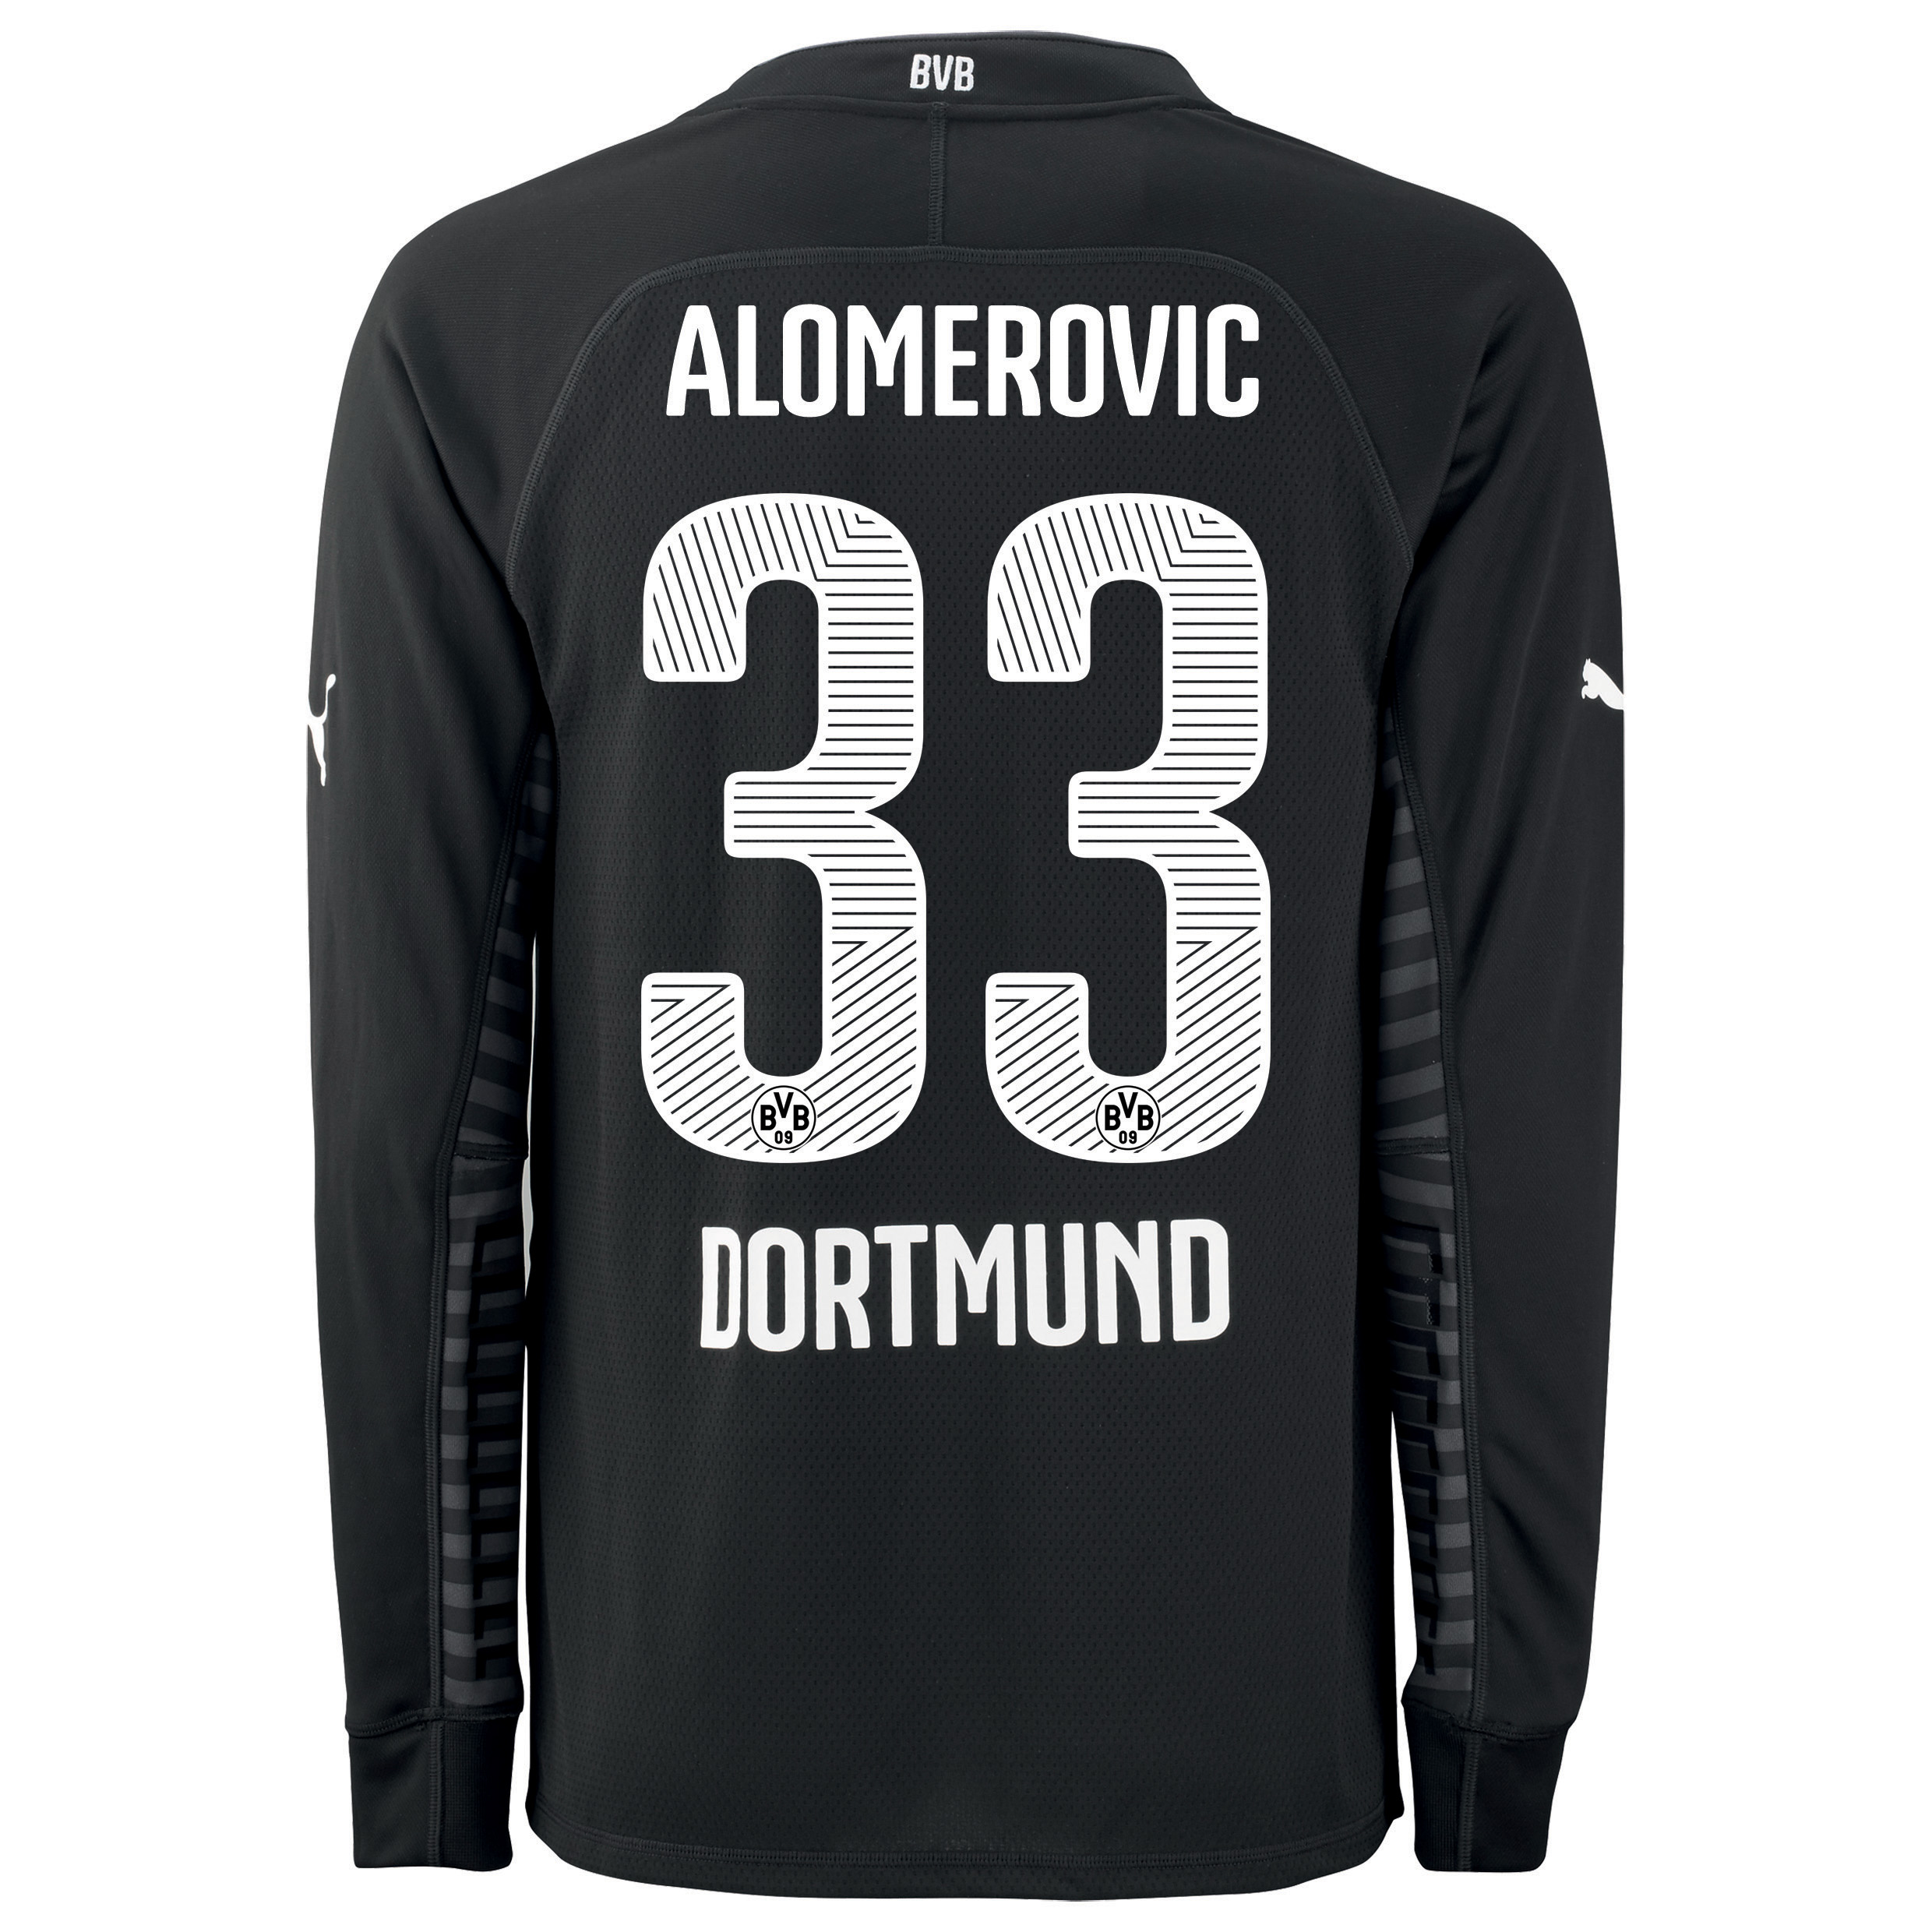 BVB Home Goalkeeper Shirt 2014/15 Black with Alomerovic 33 printing